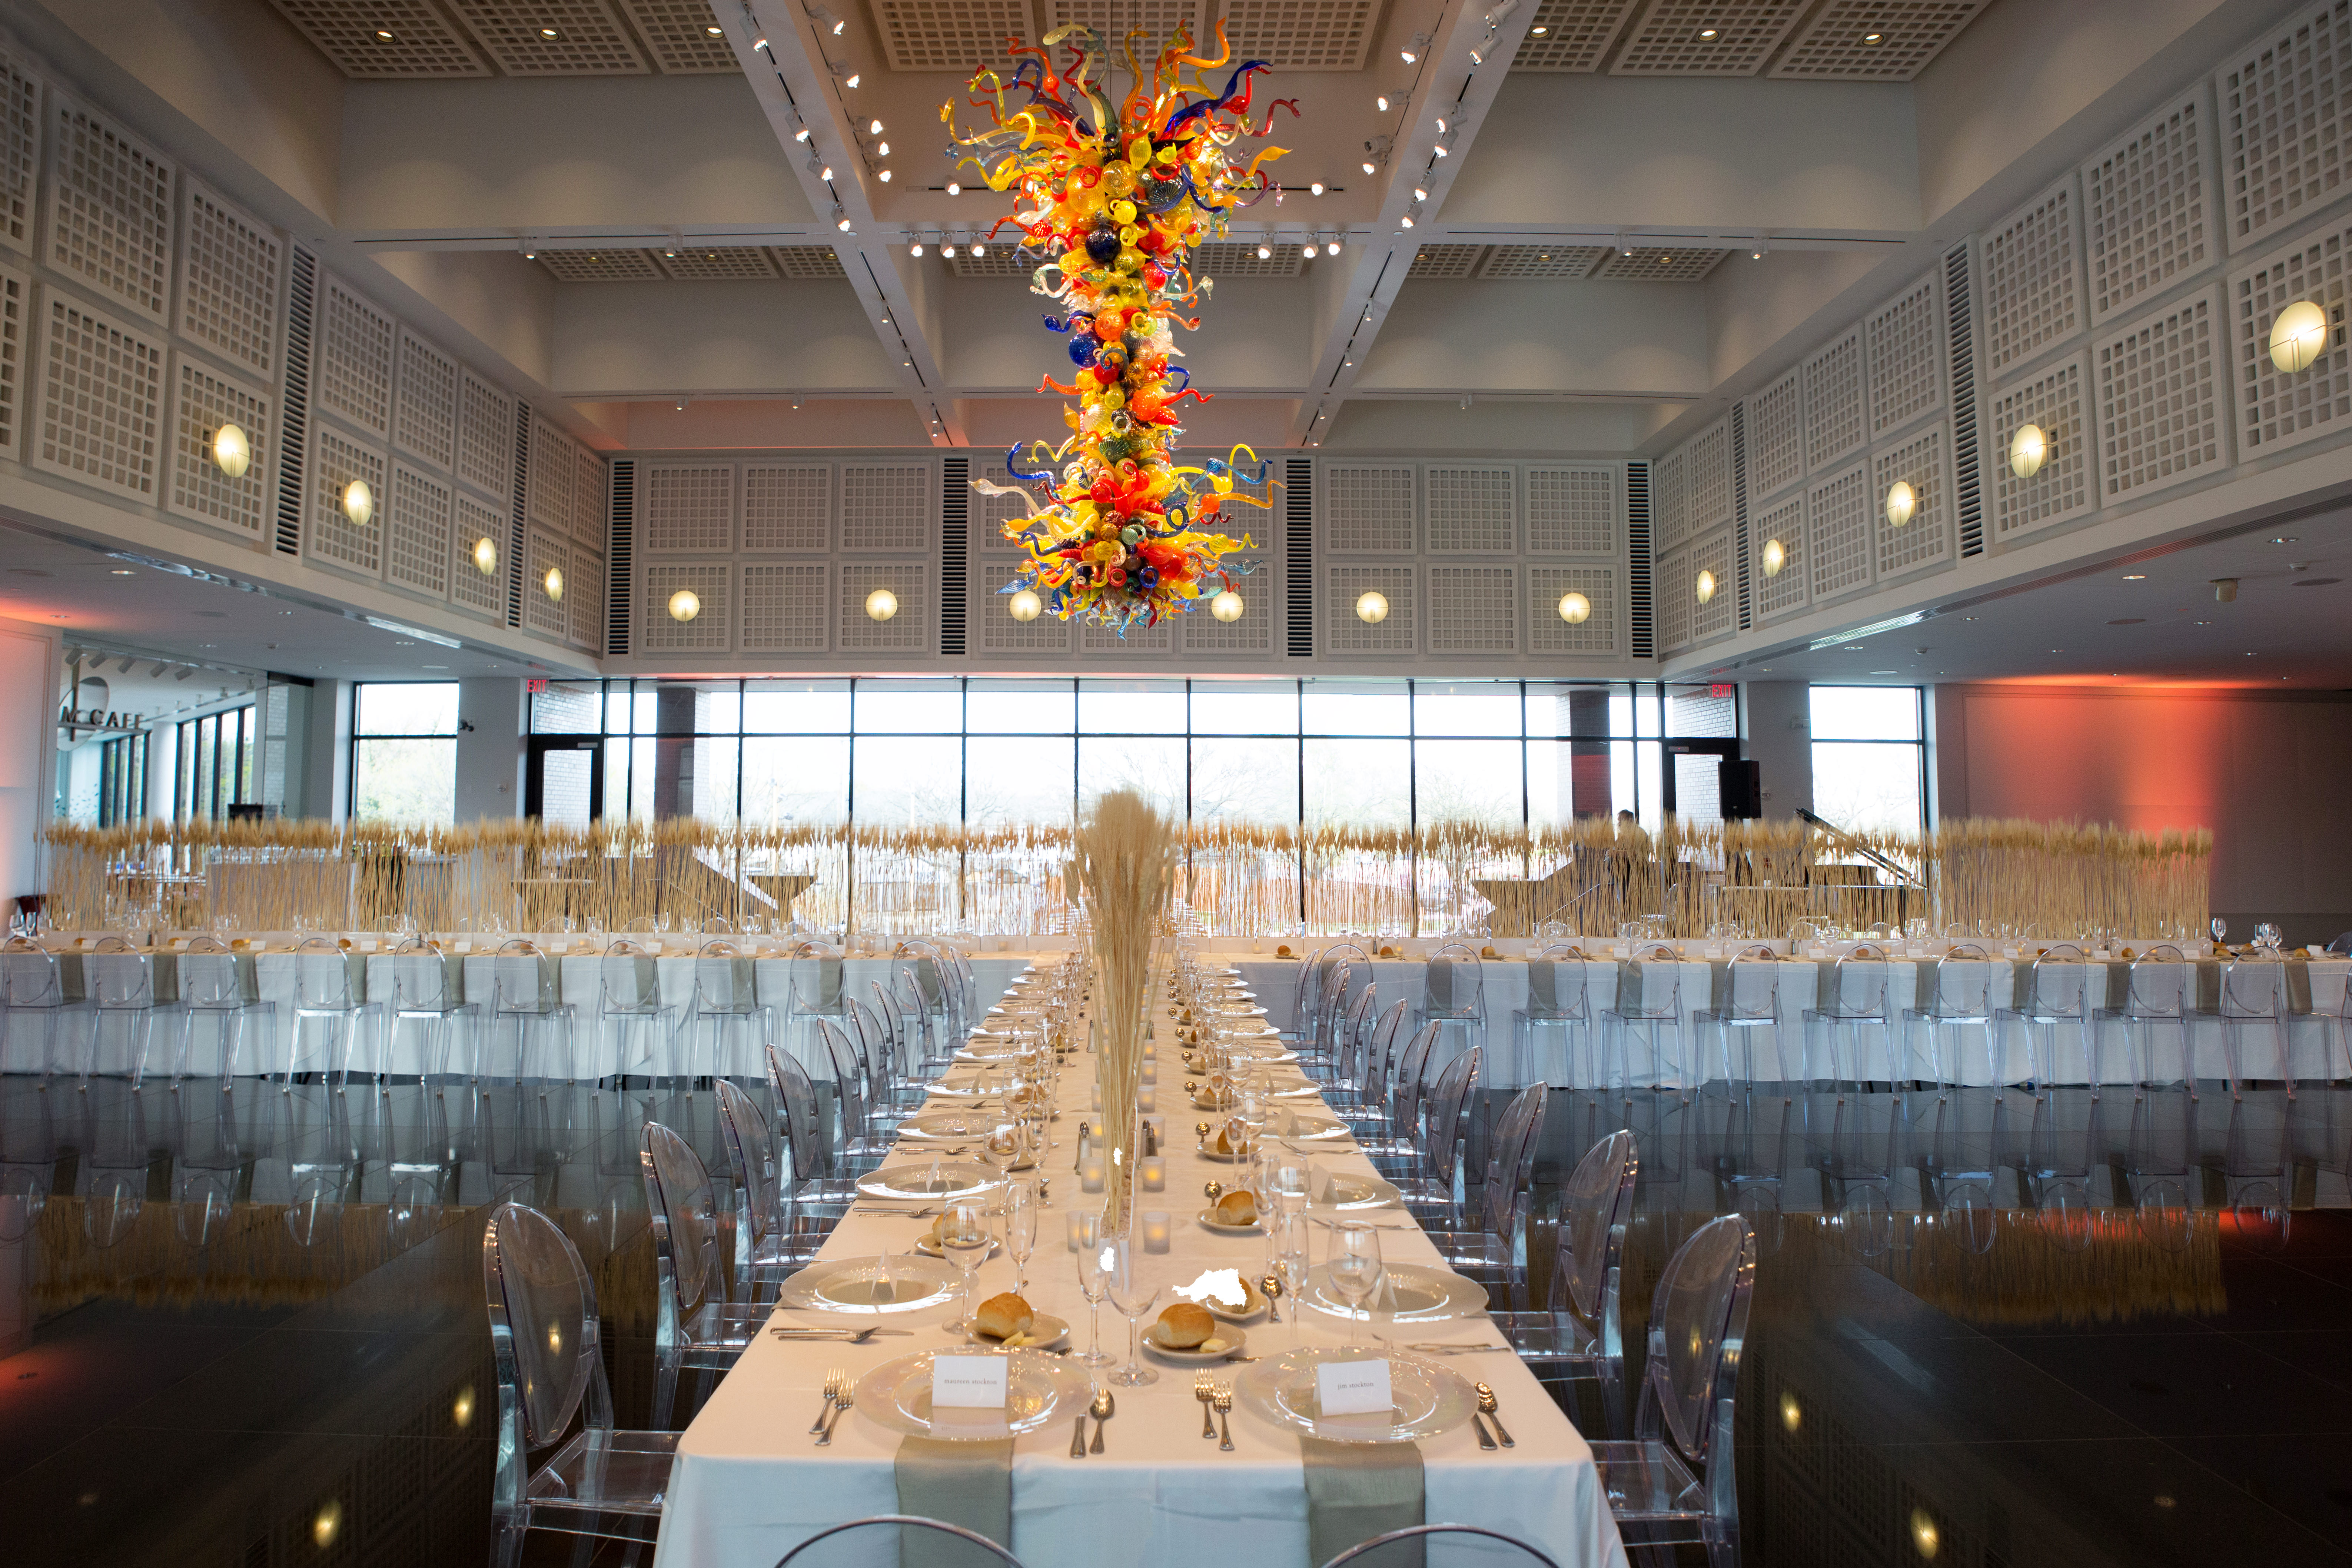 Dinner Party Event at the Wichita Art Museum - North Shore Weddings & Events